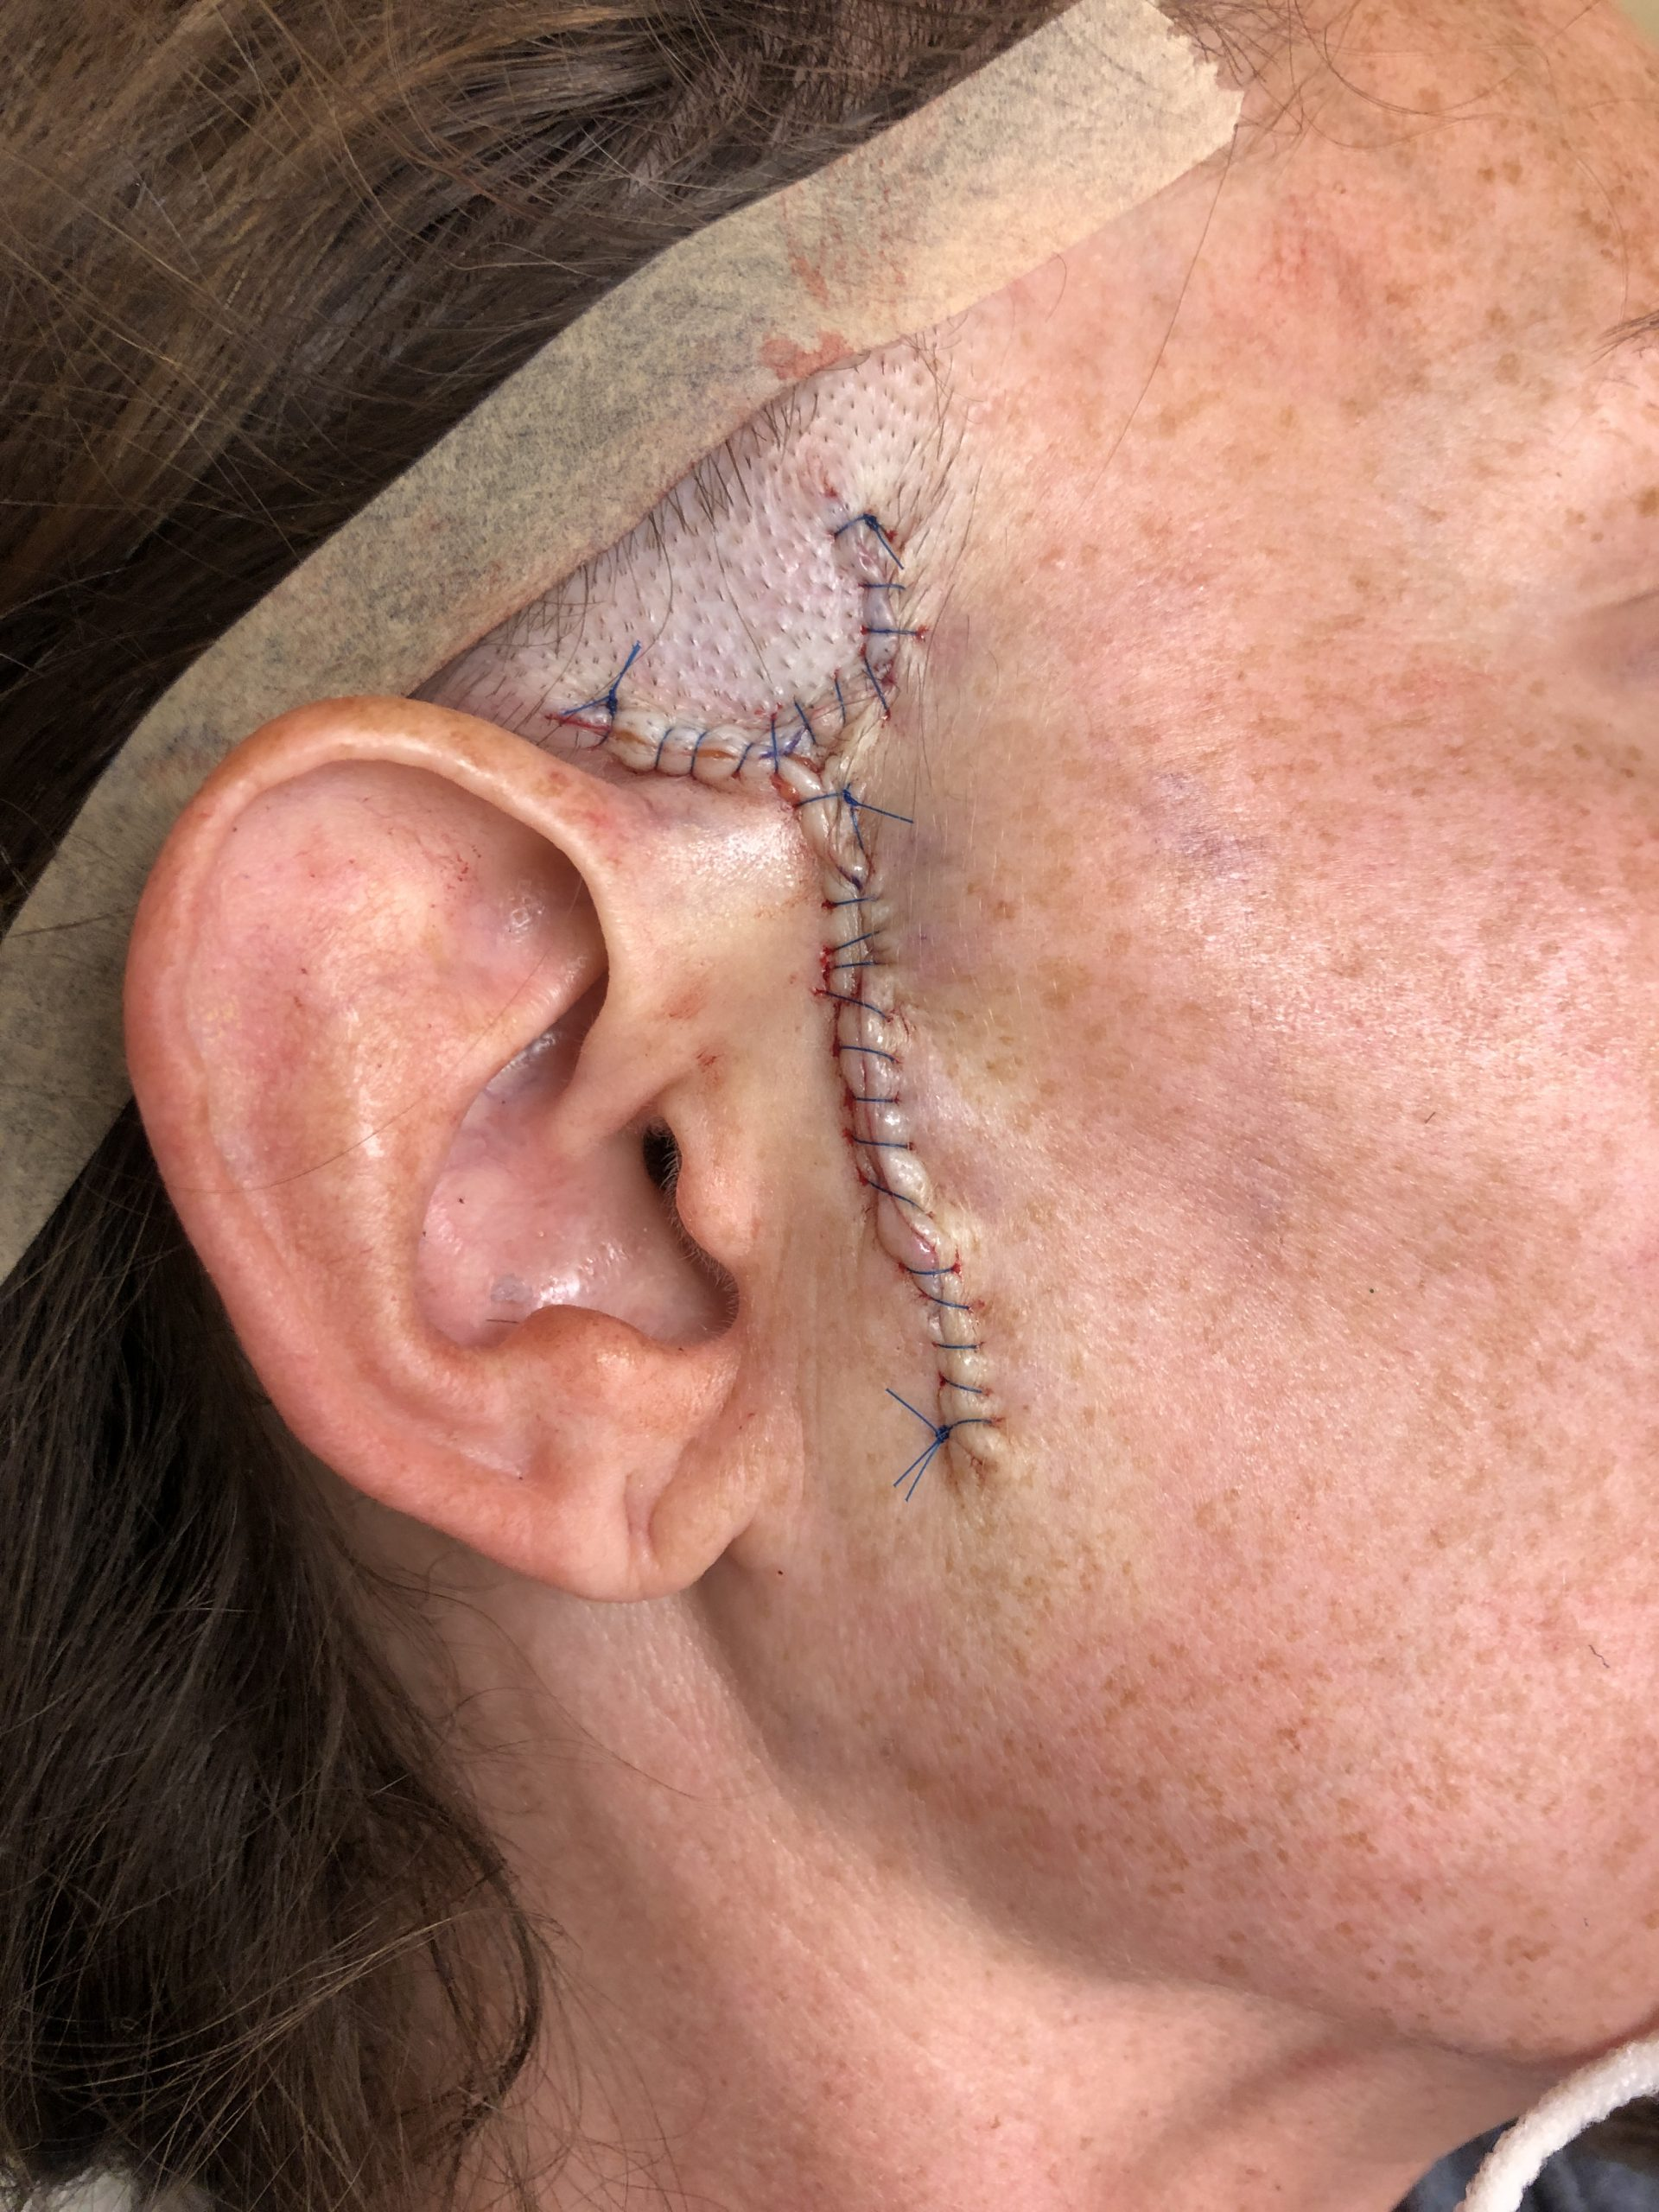 graphic scar after mohs surgery